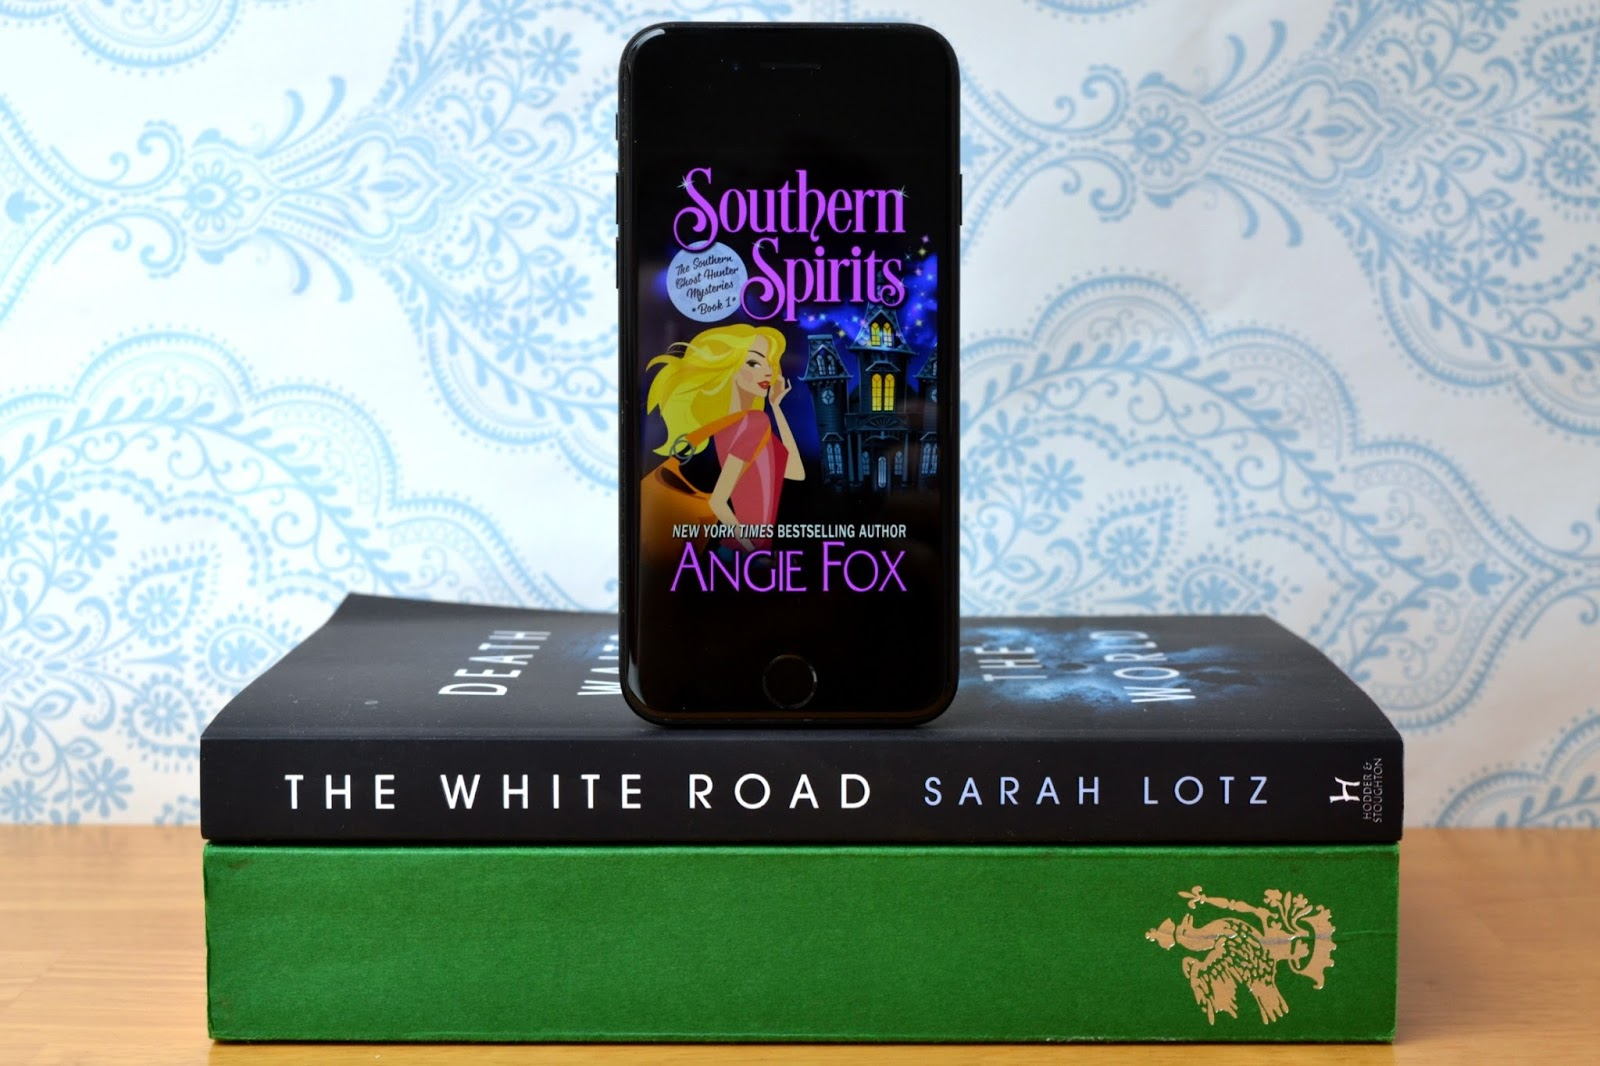 Southern Spirits by Angie Fox, The White Road by Sarah Lotz and Anne Boleyn: A King's Obsession by Alison Weir